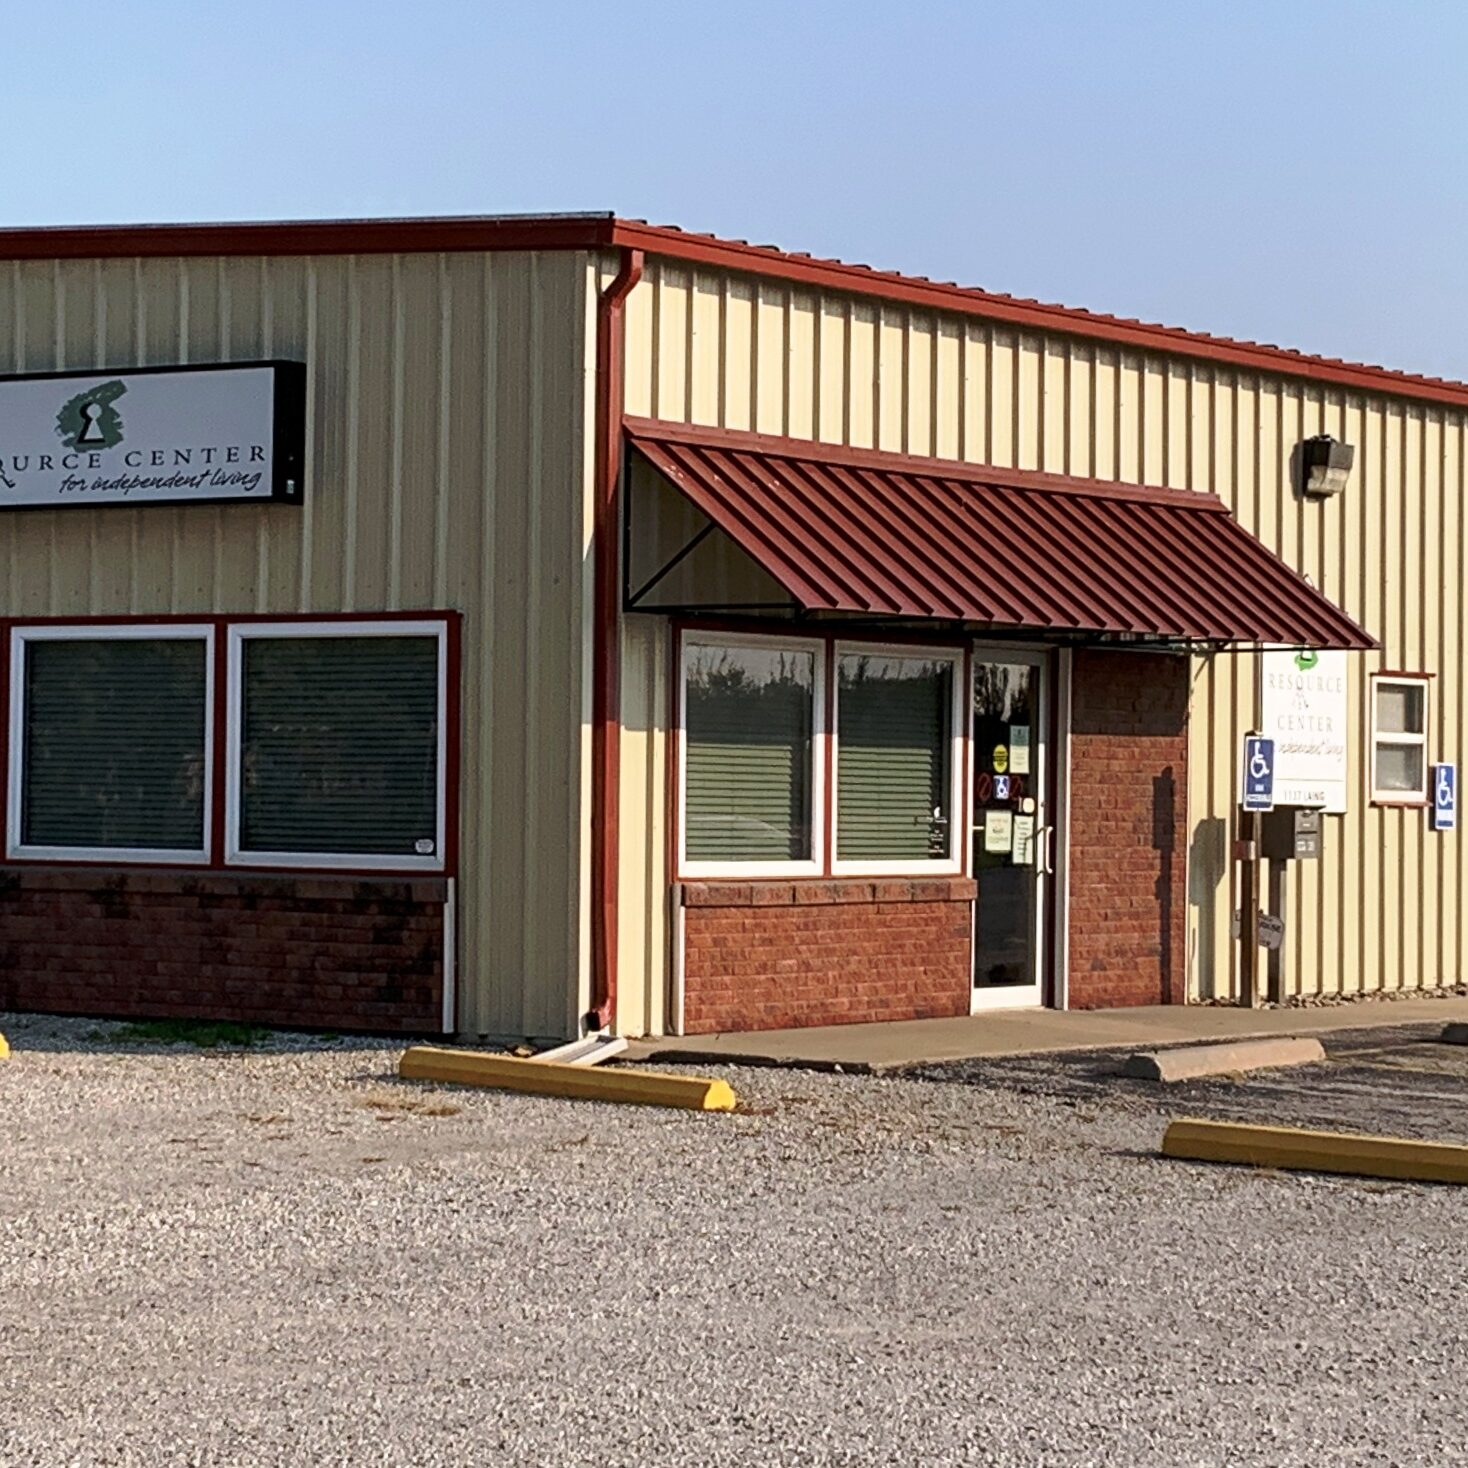 Tan colored office building with dark red trim and awning